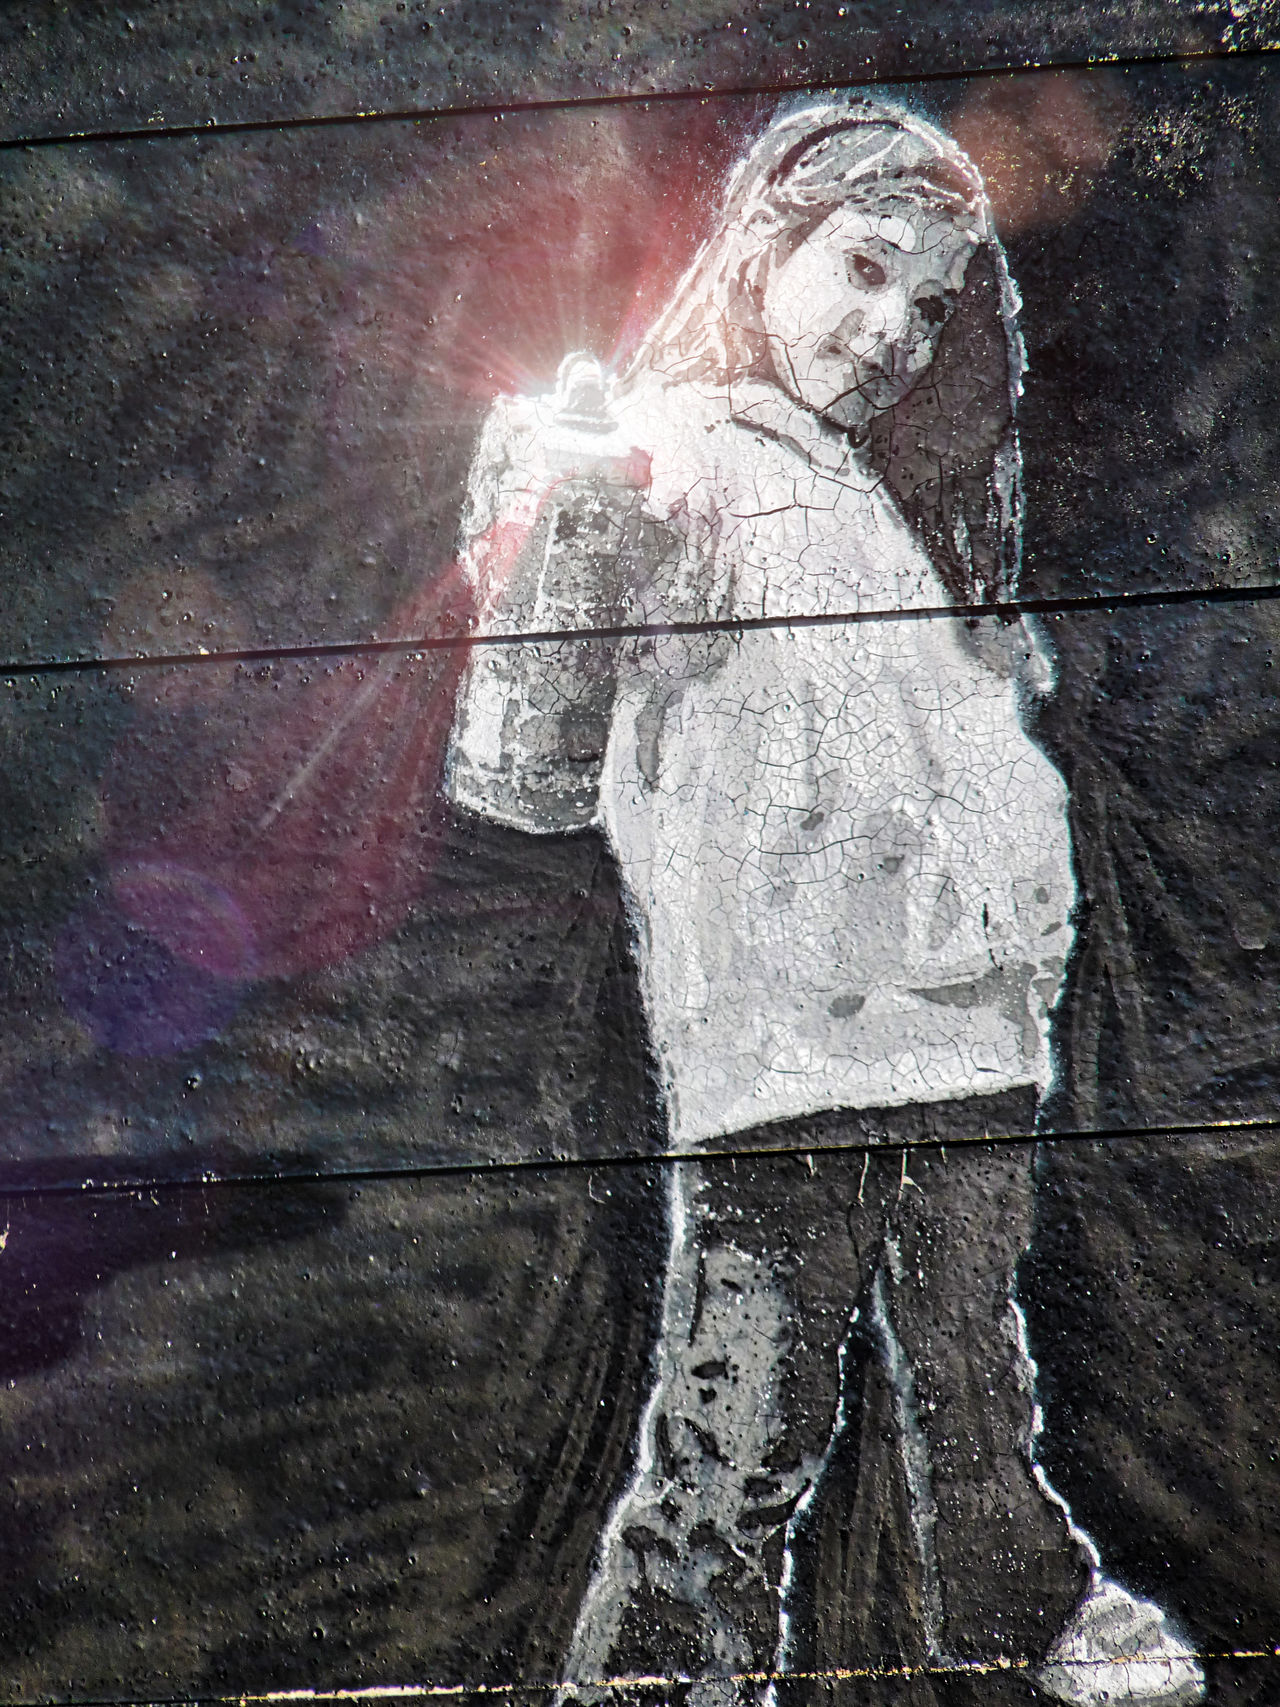 girl on a wall holding a spray can - series of 6 photos: 1 original and 5 with effects made in Cyberlink PhotoDirector Close-up Cyberlink Photodirector Day Girl Graffiti Graffiti Art Graffiti Wall No People Outdoors Special Effects Spray Can Spray Can Art Spray Paint Spraying Wall